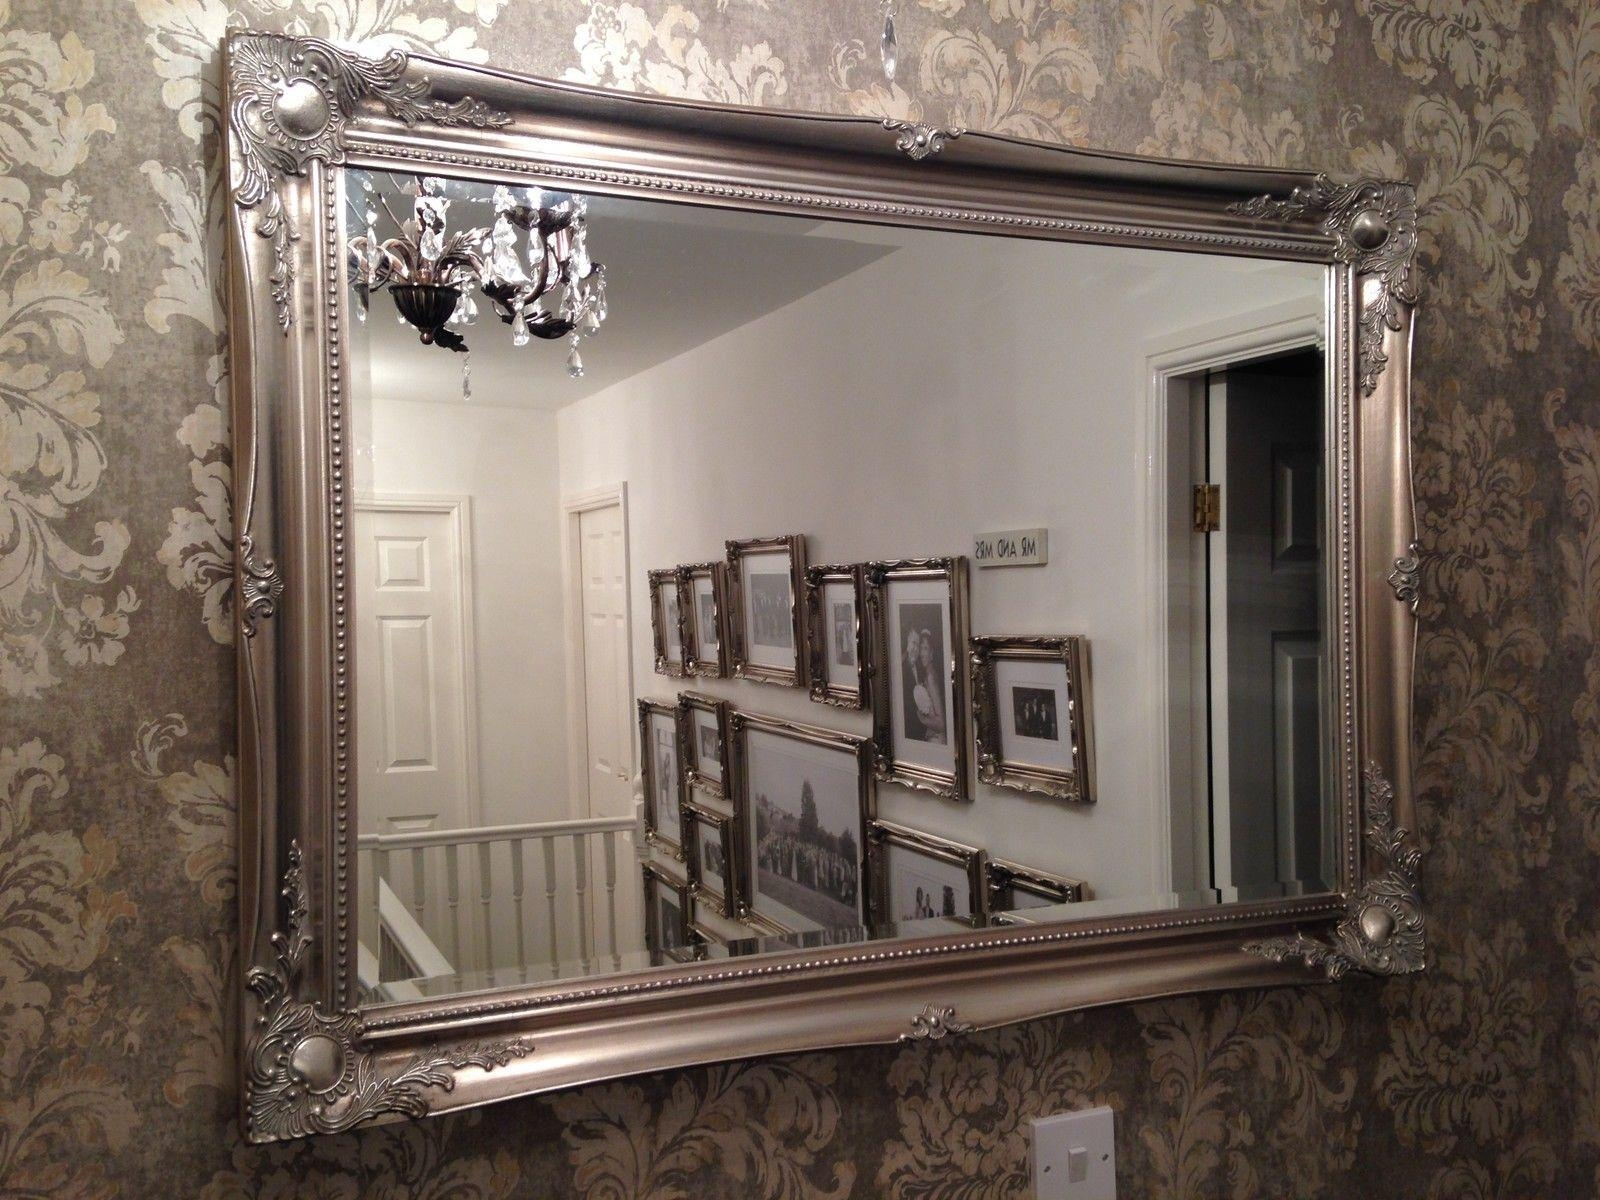 Old Fashioned Wall Mirrors Antique Mirror Wall Covering Vintage For Antique Mirrors For Sale Vintage Mirrors (View 15 of 20)